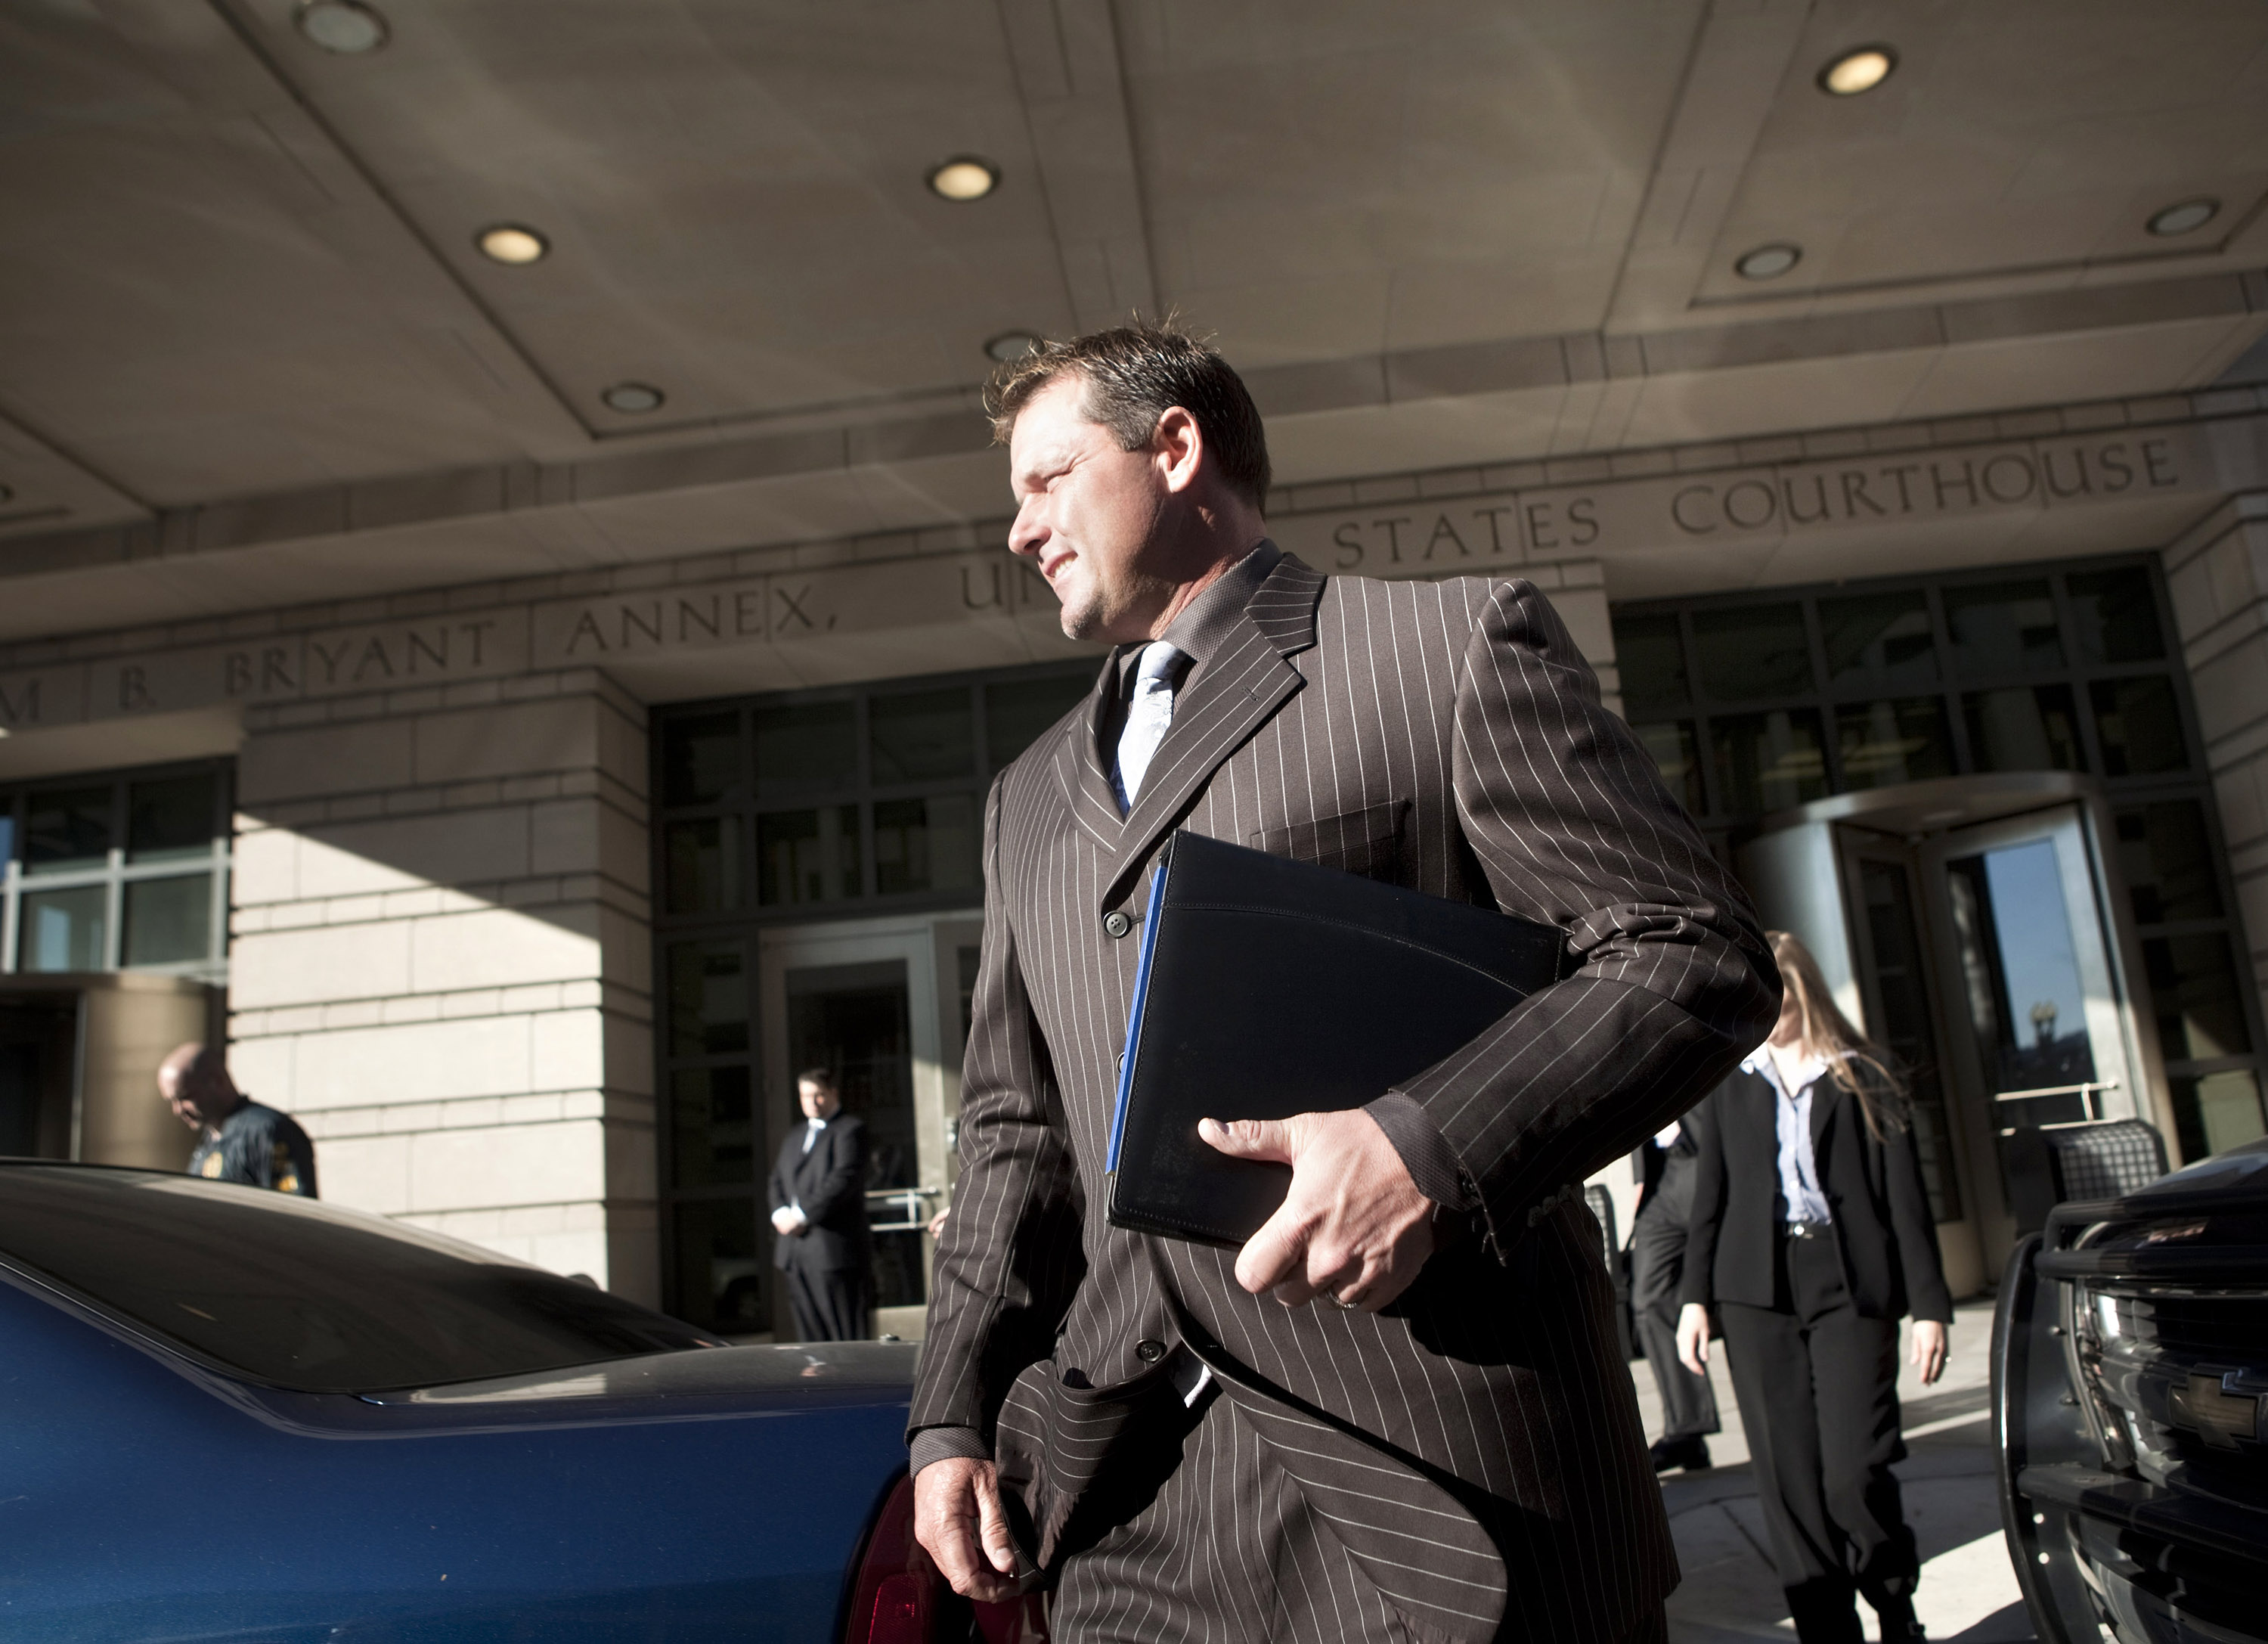 WASHINGTON - DECEMBER 8:  Roger Clemens leaves Federal Court December 8, 2010 in Washington, DC.  Clemens, a former Major League Baseball pitcher, appeared at court for an interim status conference on charges he lied to Congress during a hearing on the us